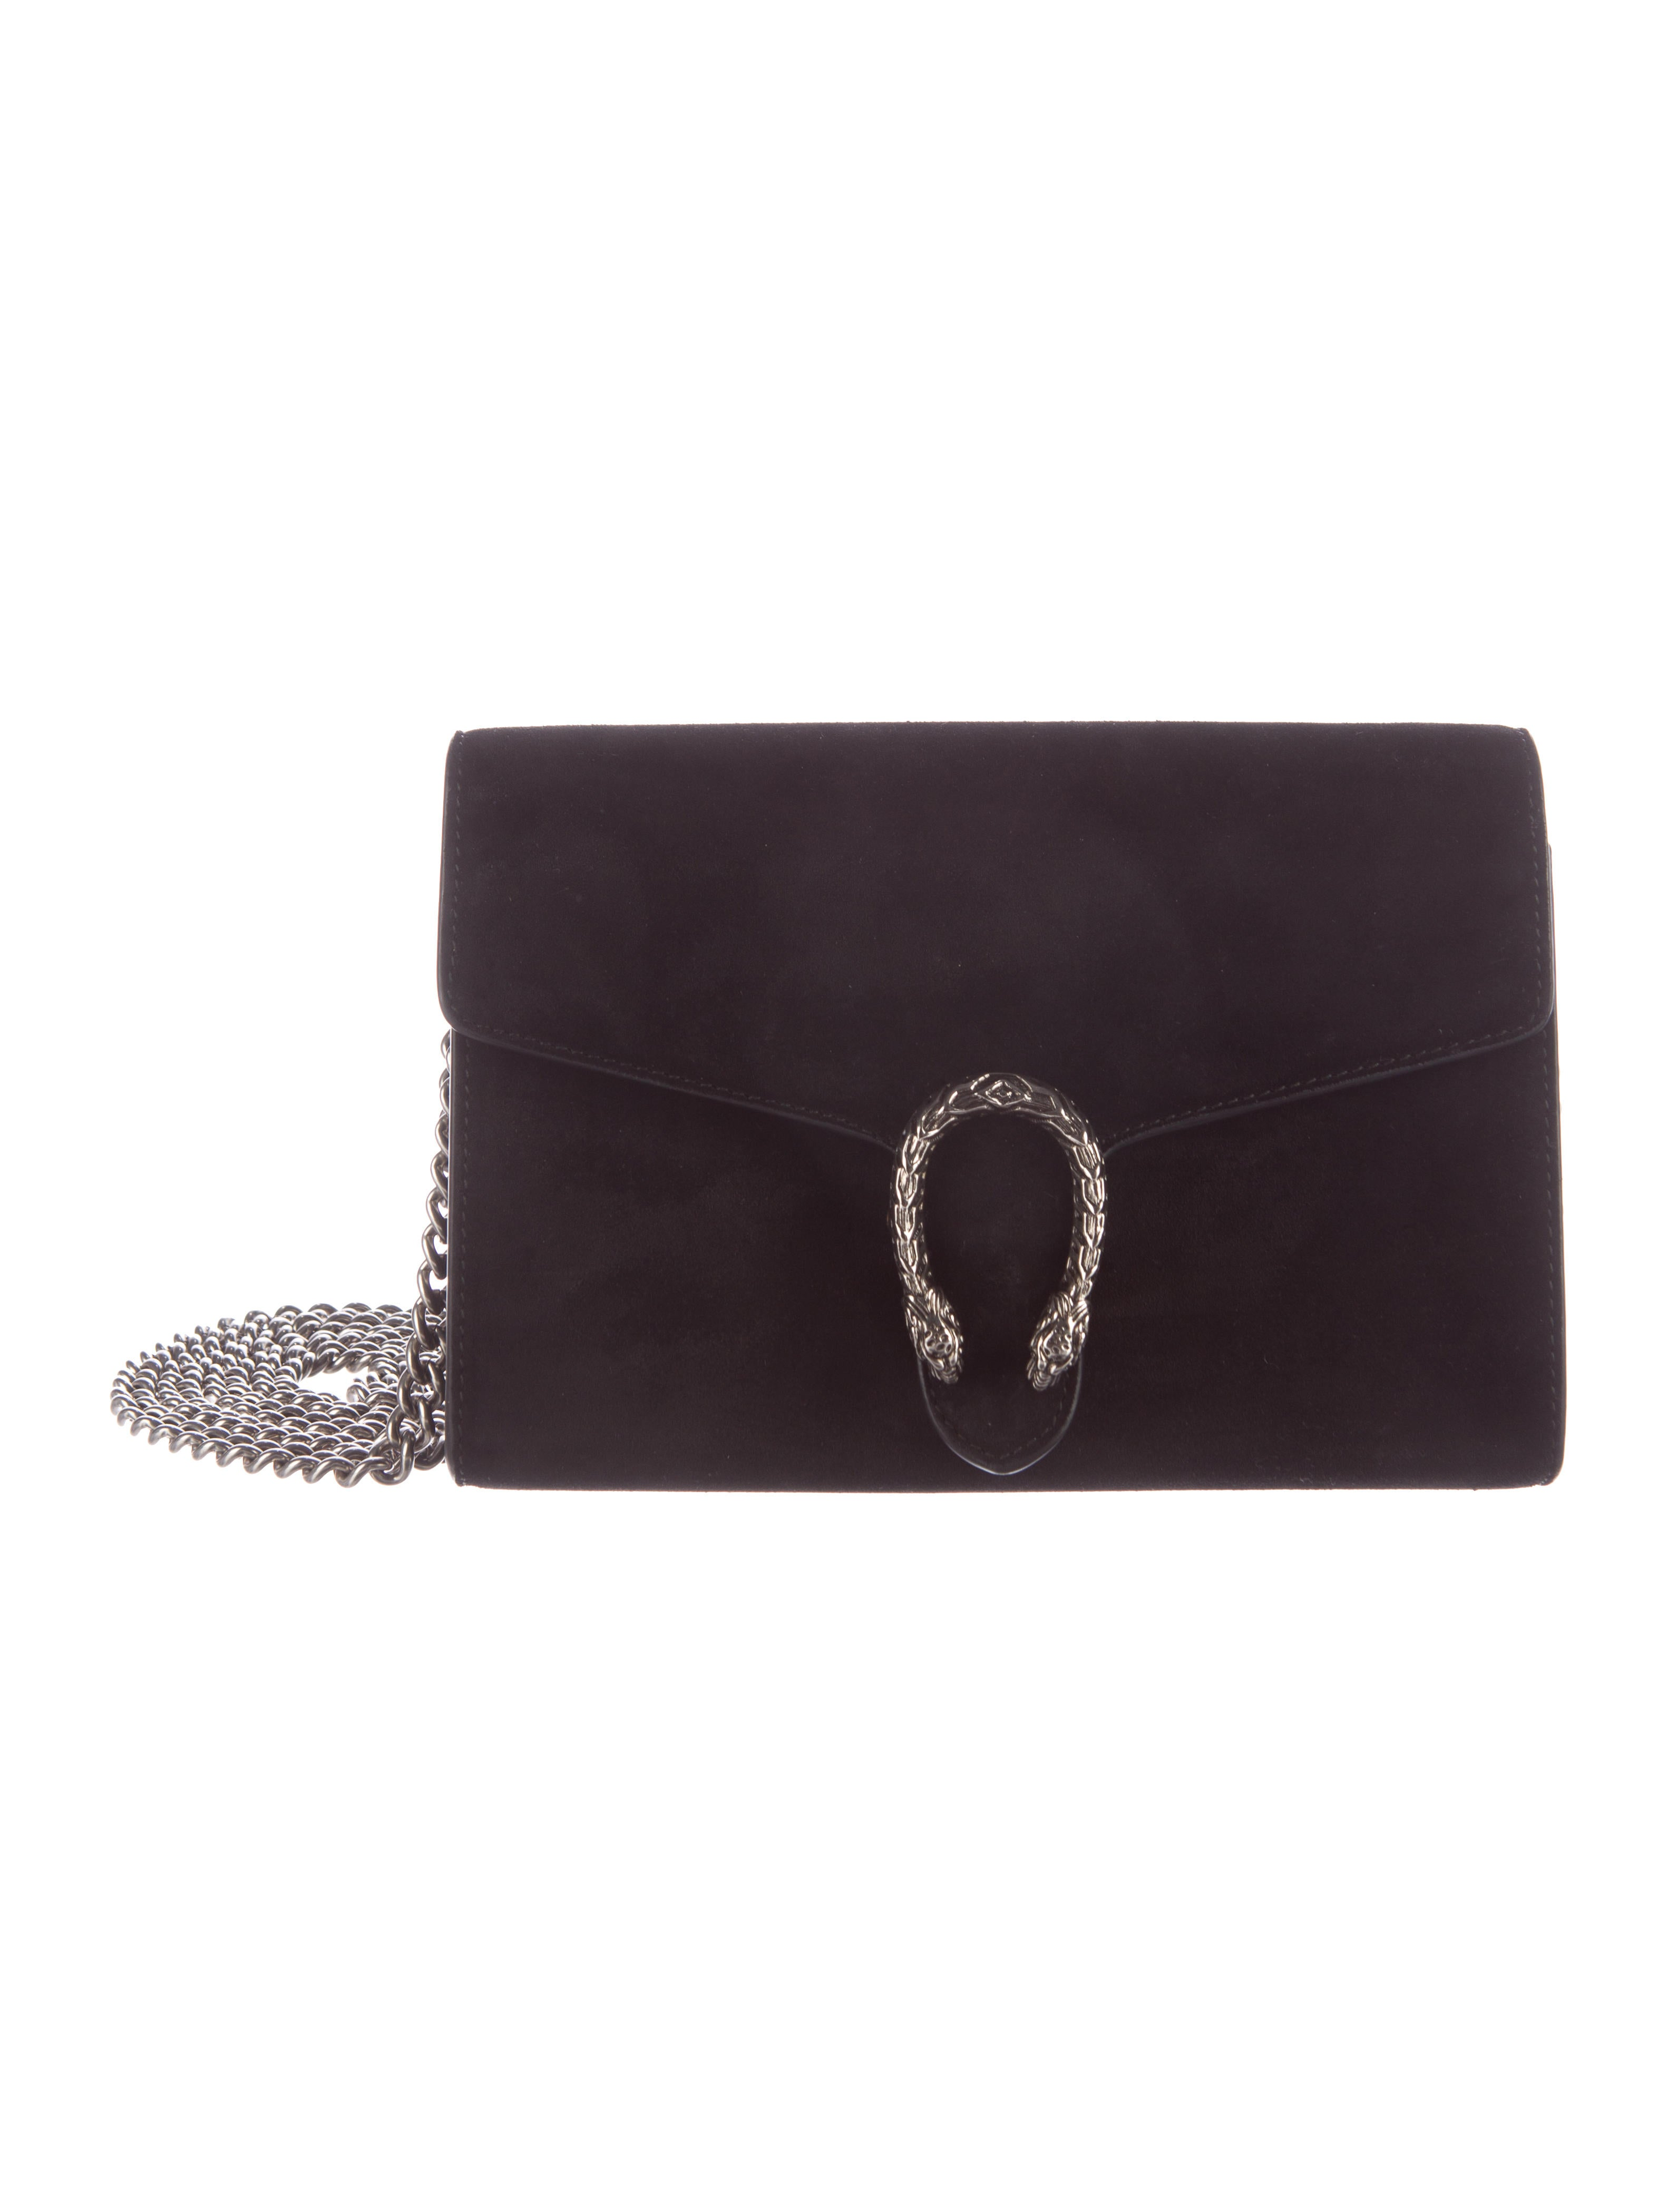 6e9ff9b6efc0 Gucci Dionysus Suede Chain Wallet - Accessories - GUC140327 | The ...